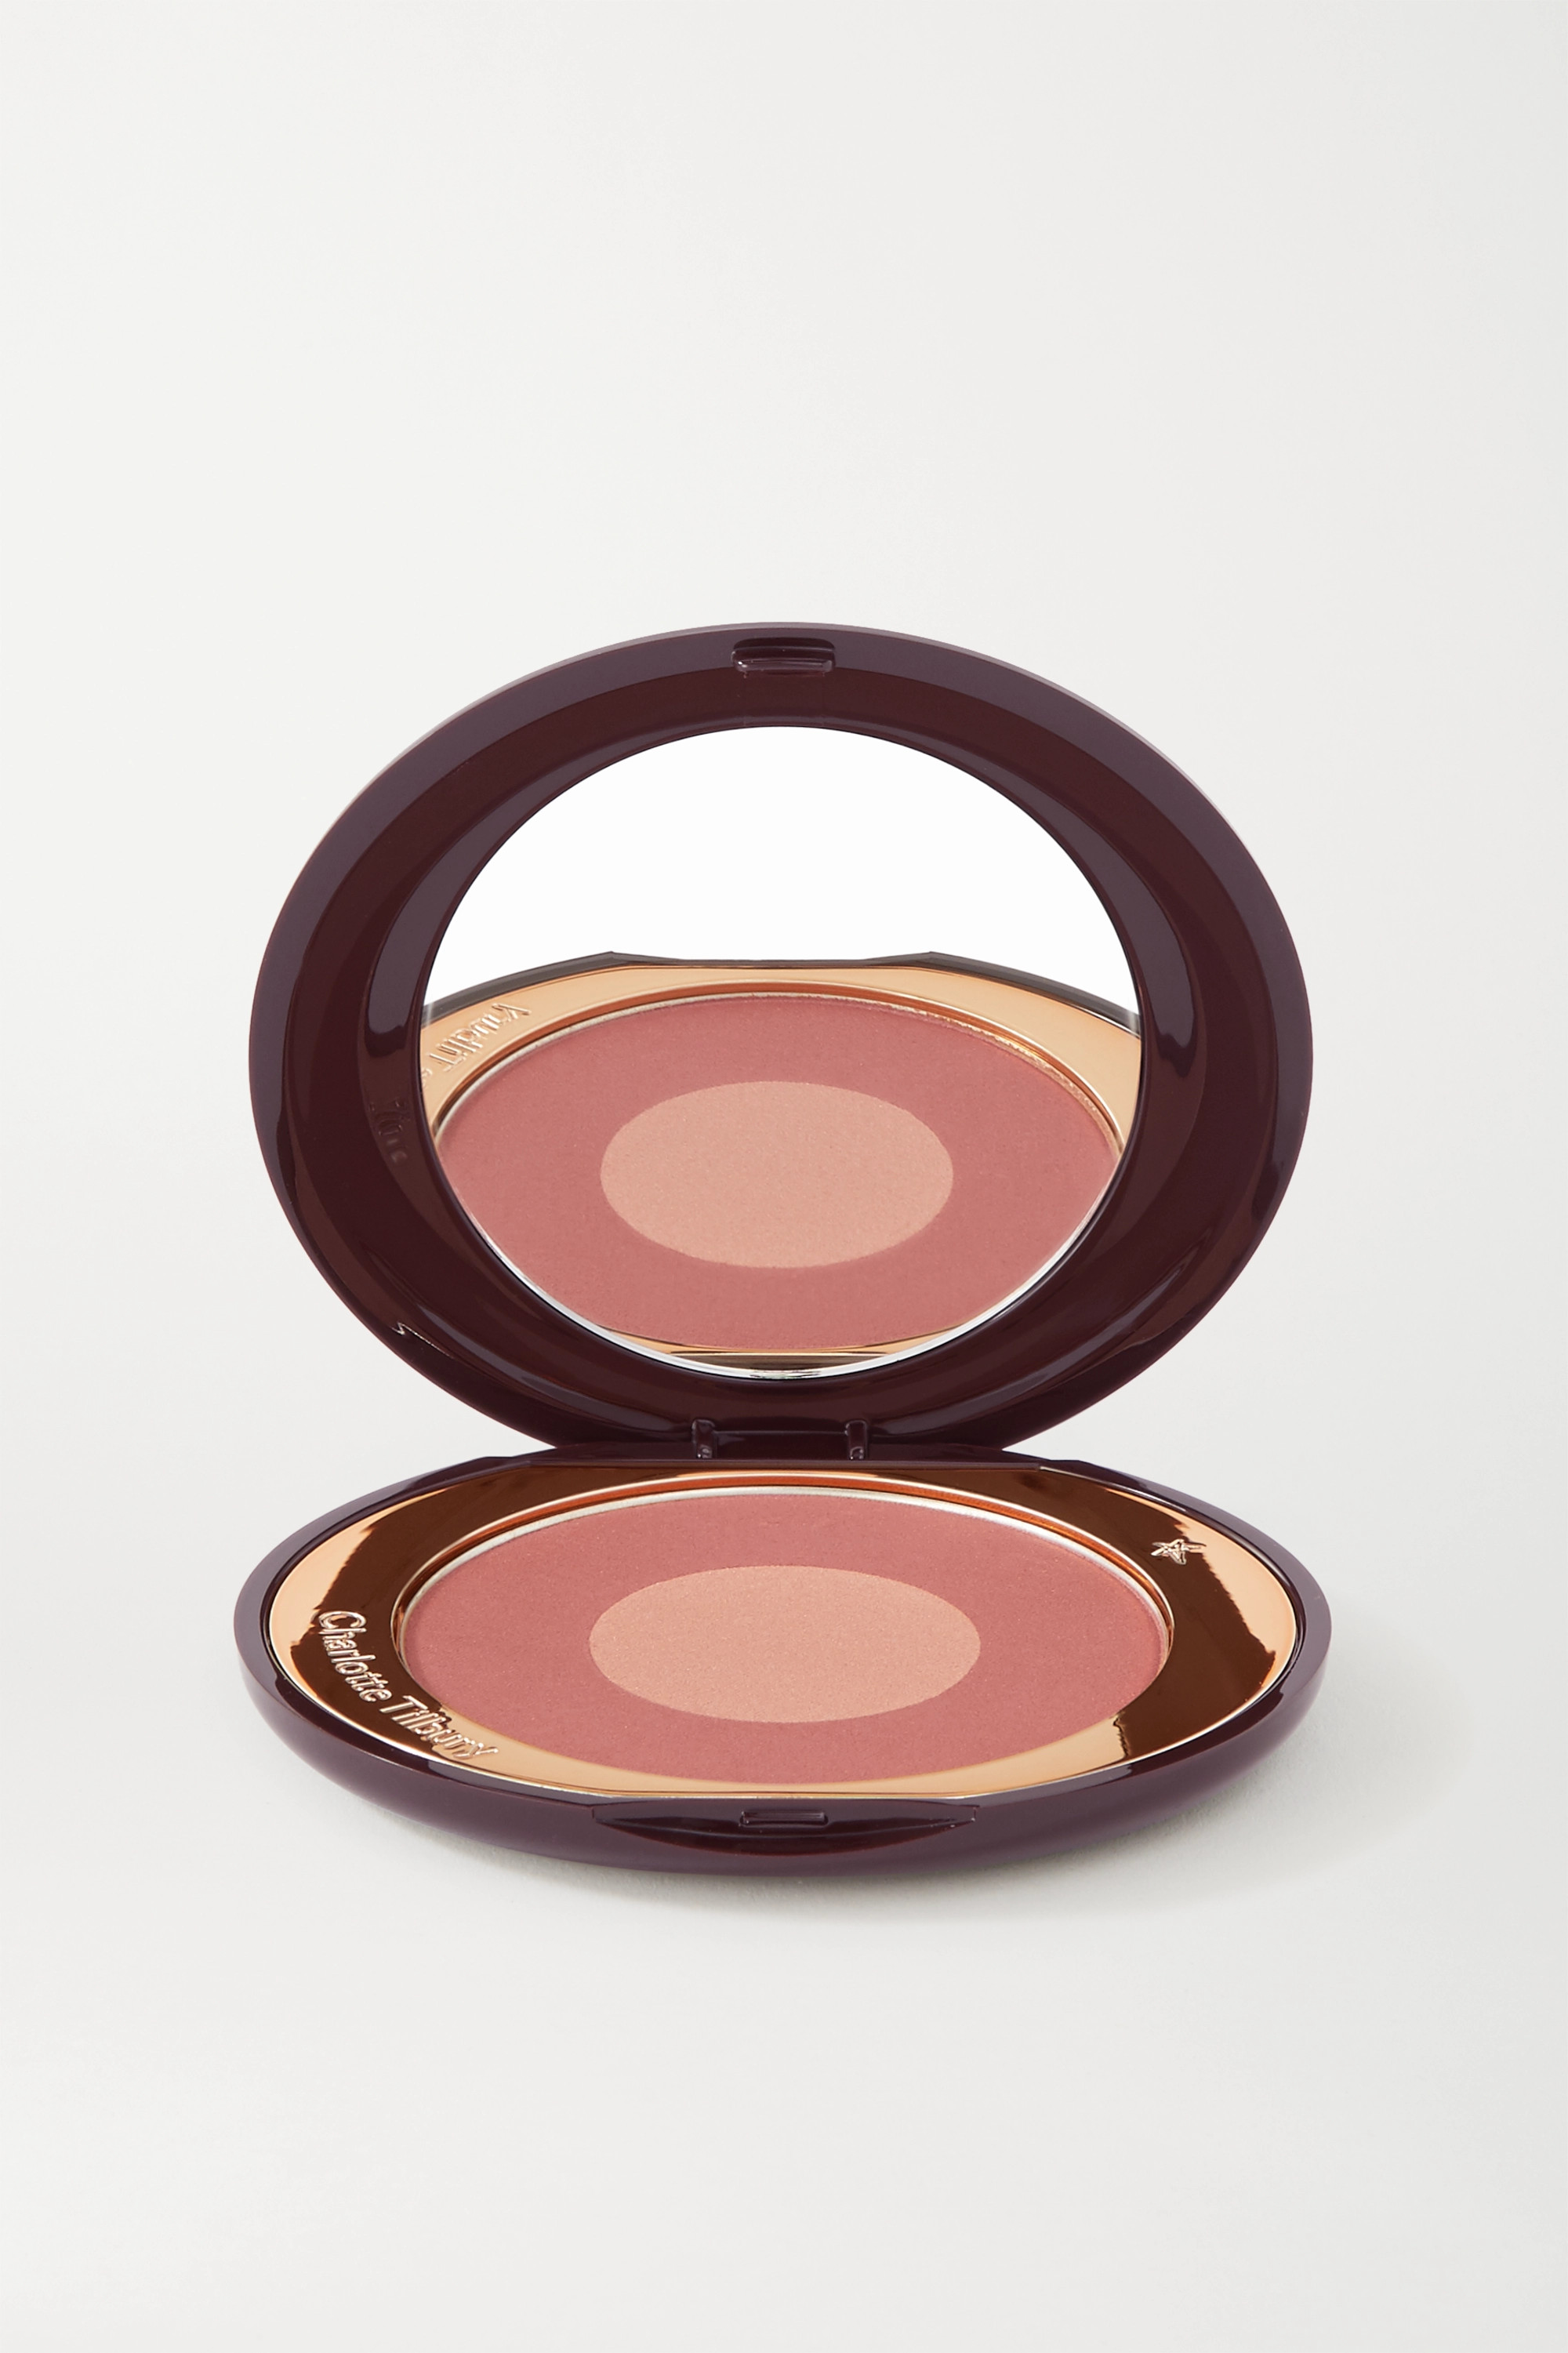 Charlotte Tilbury Cheek to Chic Swish & Pop Blusher - Walk Of No Shame